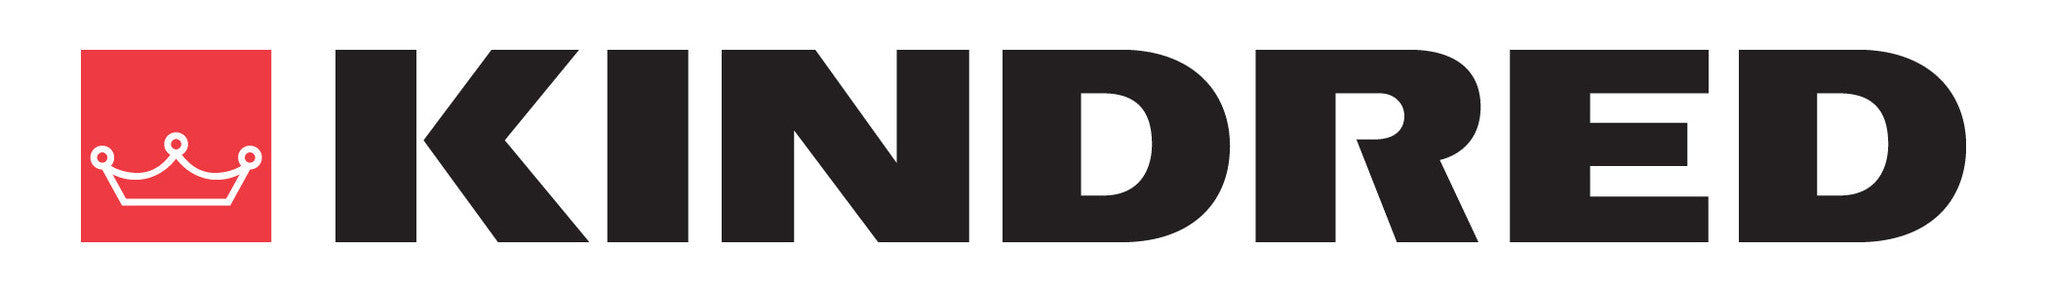 Image result for kindred logo